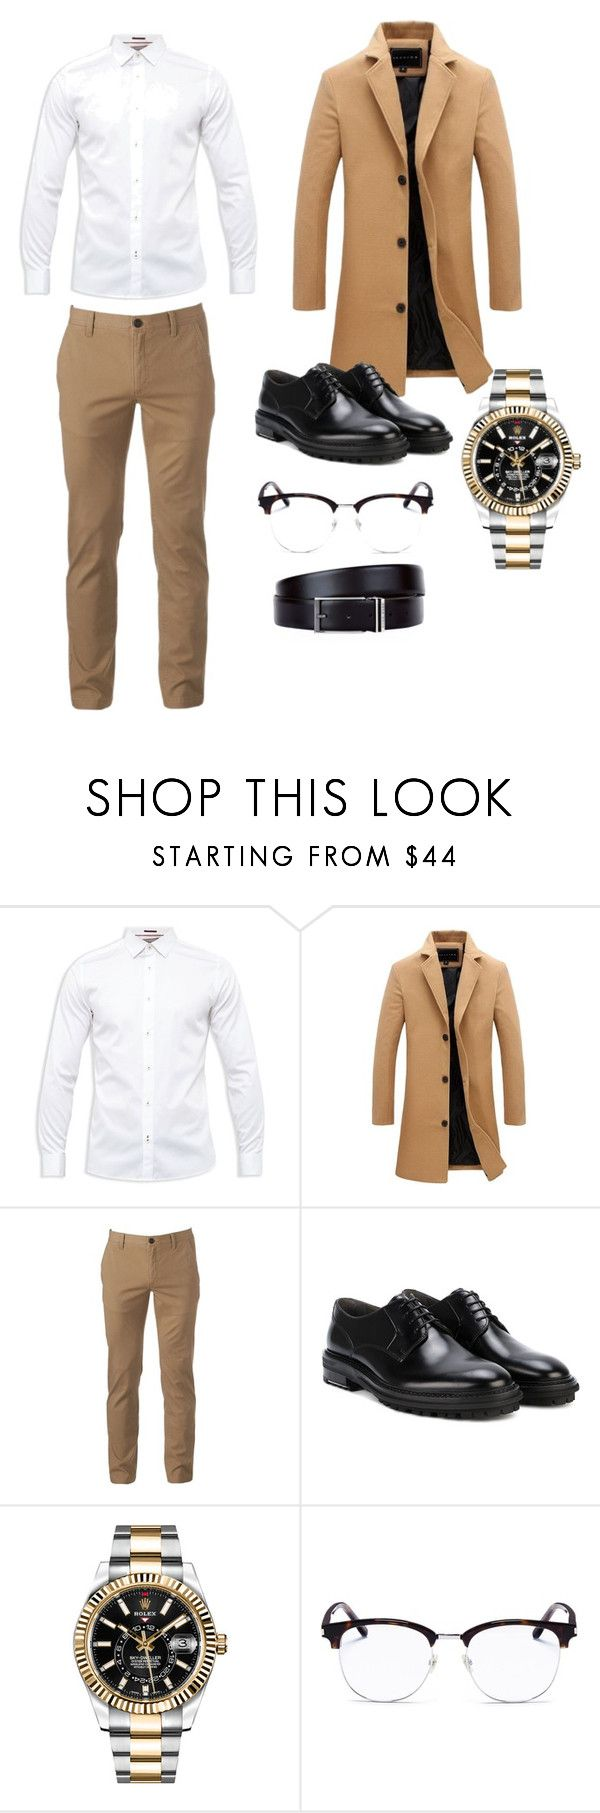 """[V] Handsome Devil"" by hanyoongun ❤ liked on Polyvore featuring Ted Baker, Urban Pipeline, Lanvin, Rolex, Yves Saint Laurent, HUGO, men's fashion and menswear"